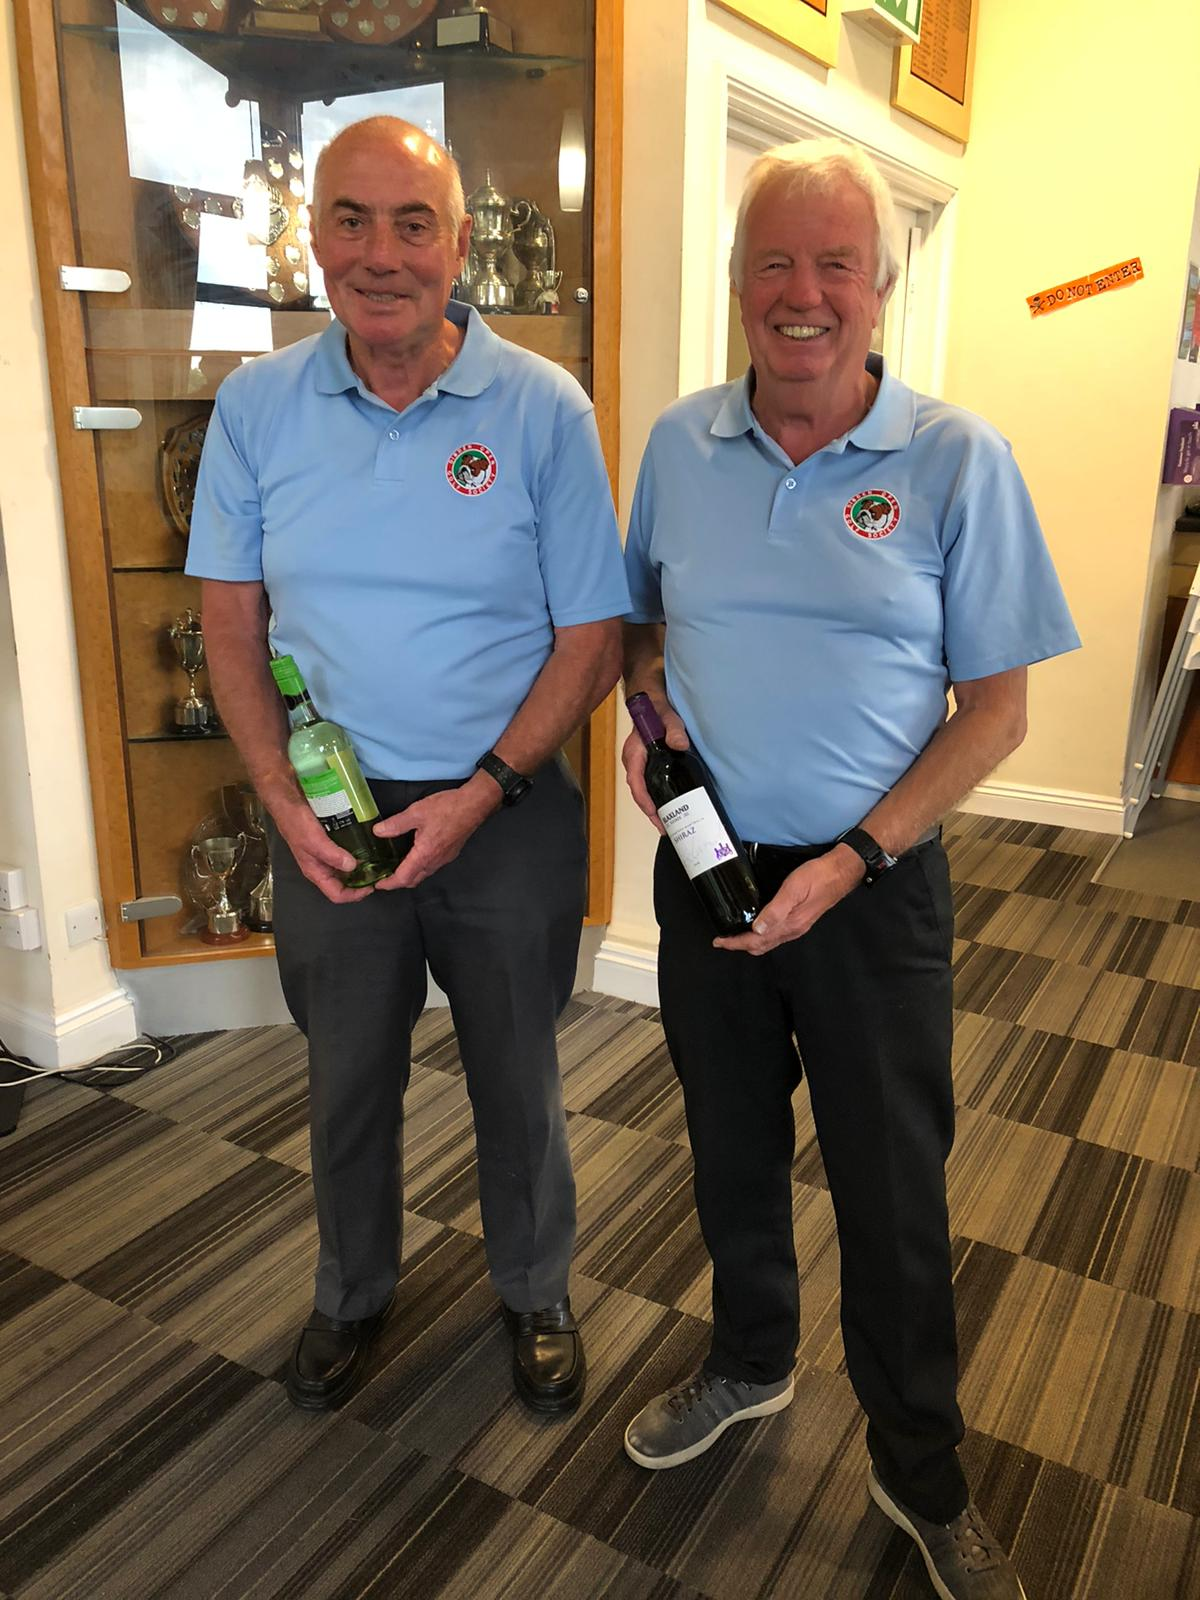 Wine winners 22 October L to R:- I Cameron - P Dunn who was also highest Stableford.